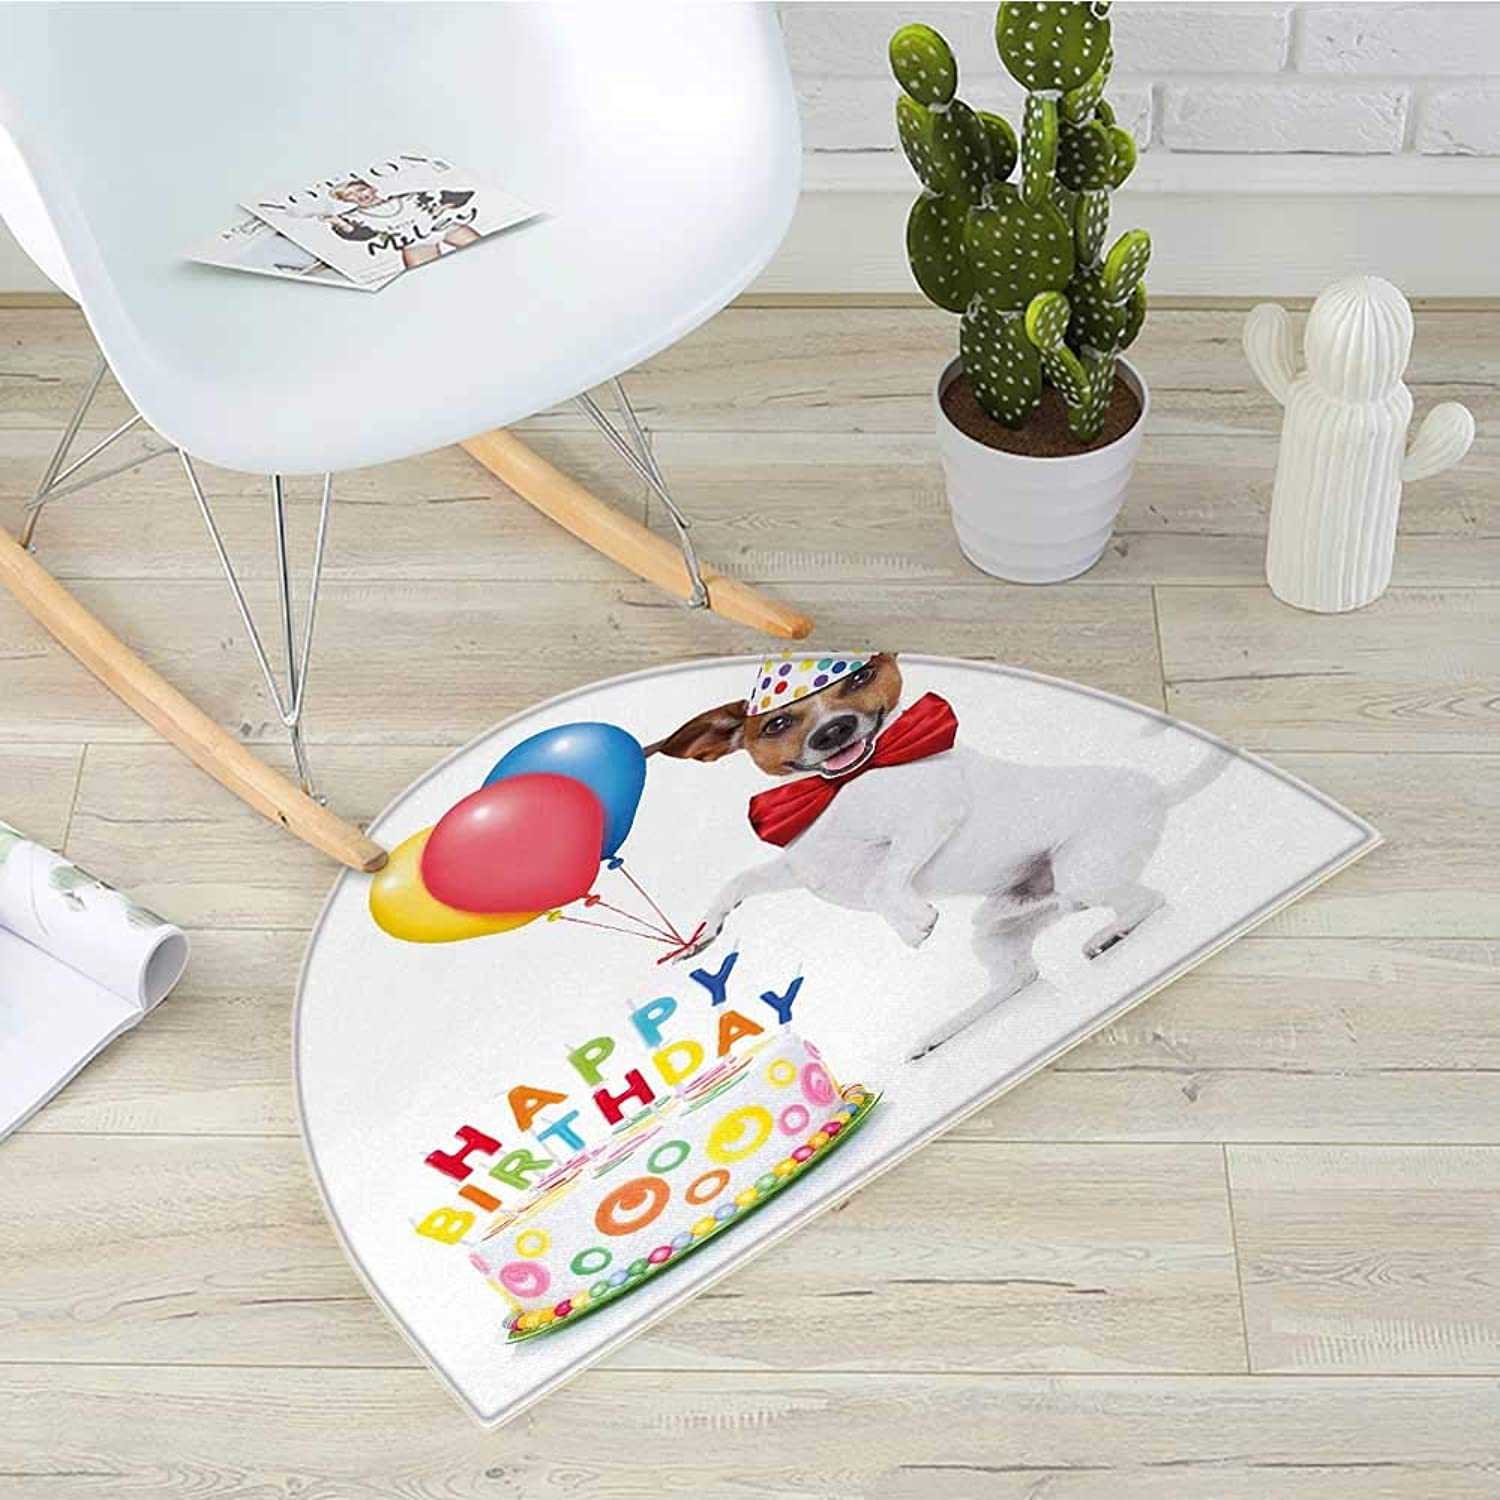 Kids Birthday Half Round Door mats Celebration Dancing Party Dog with Cake and colorful Balloons Artwork Print Bathroom Mat H 39.3  xD 59  Multicolor